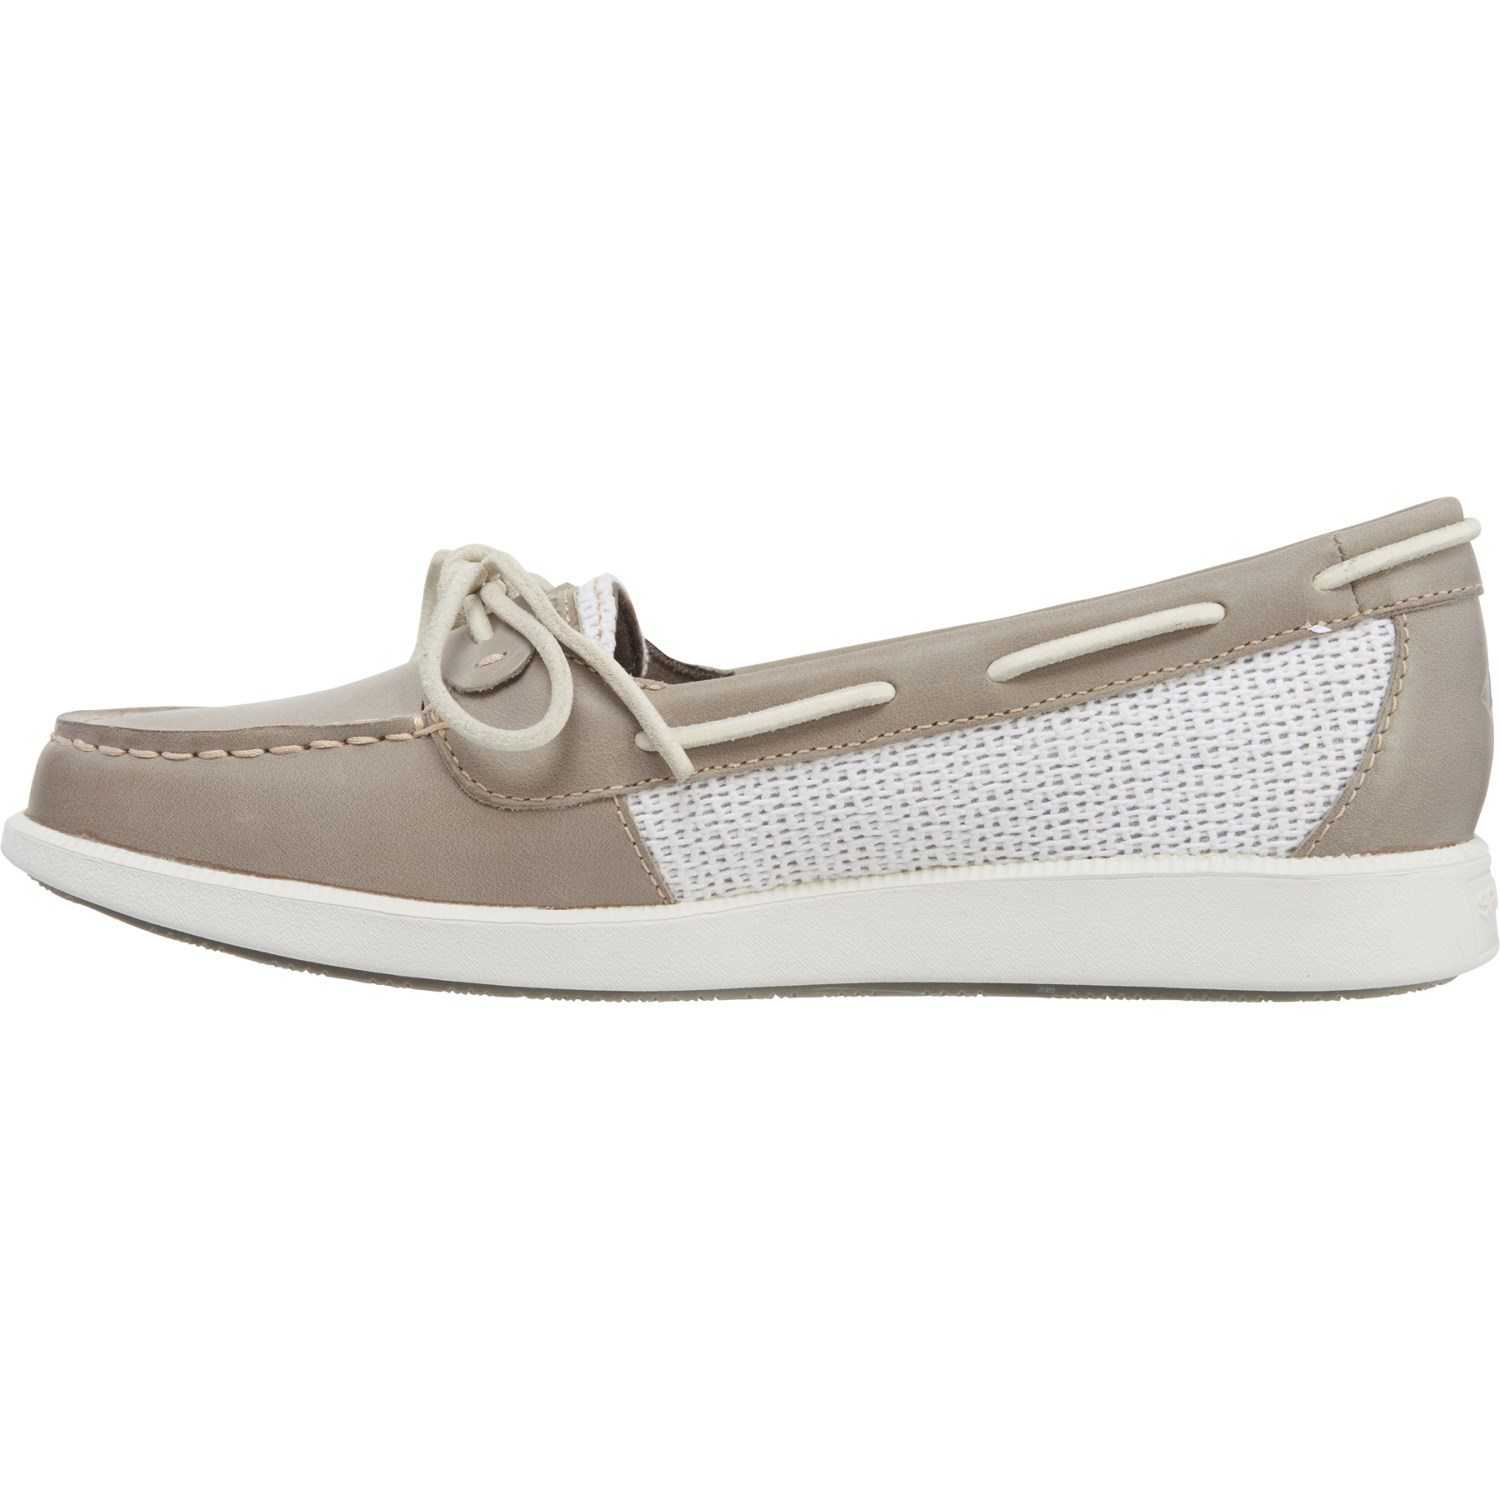 8c9f38664 Sperry Oasis Loft Boat Shoes - Leather (For Women)